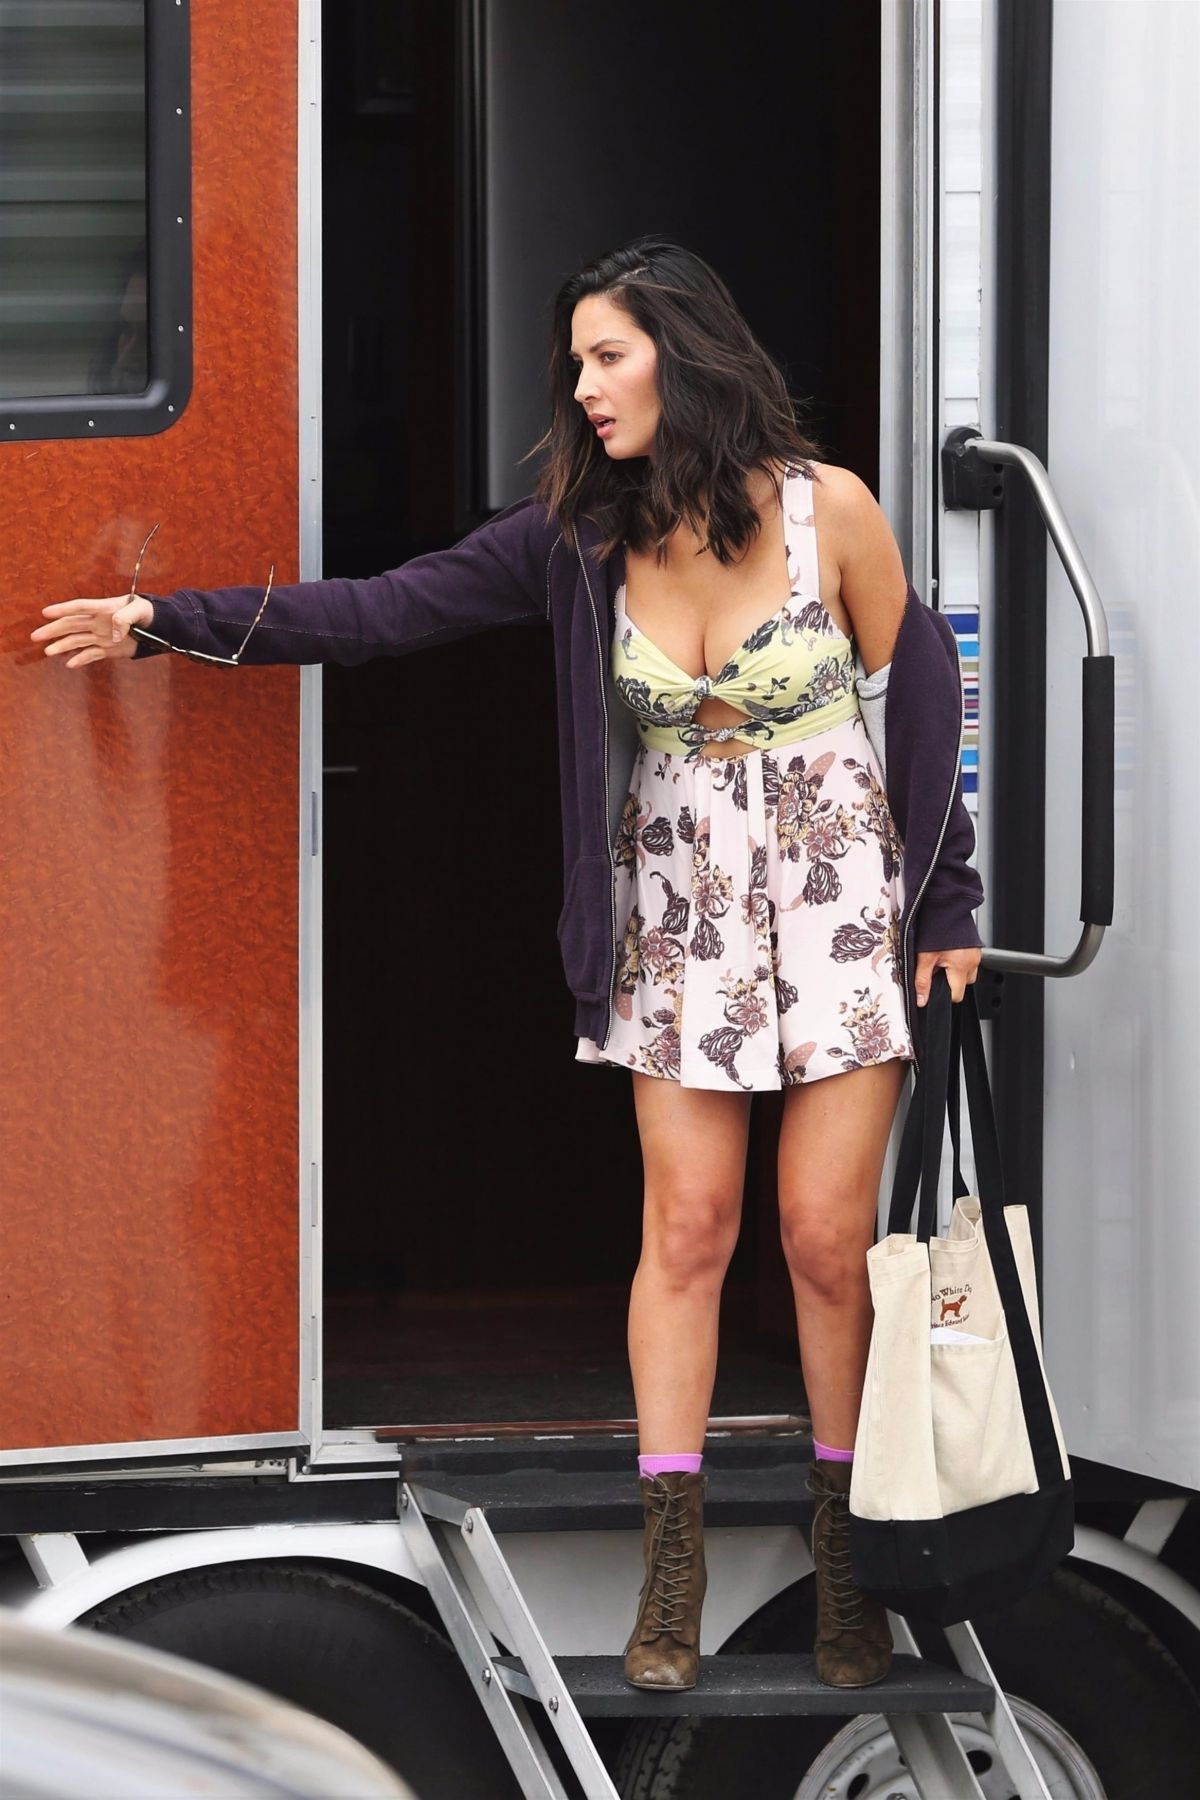 Olivia Munn Shows some cleavage in a low-cut floral print dress while on the 7bb41bdbf